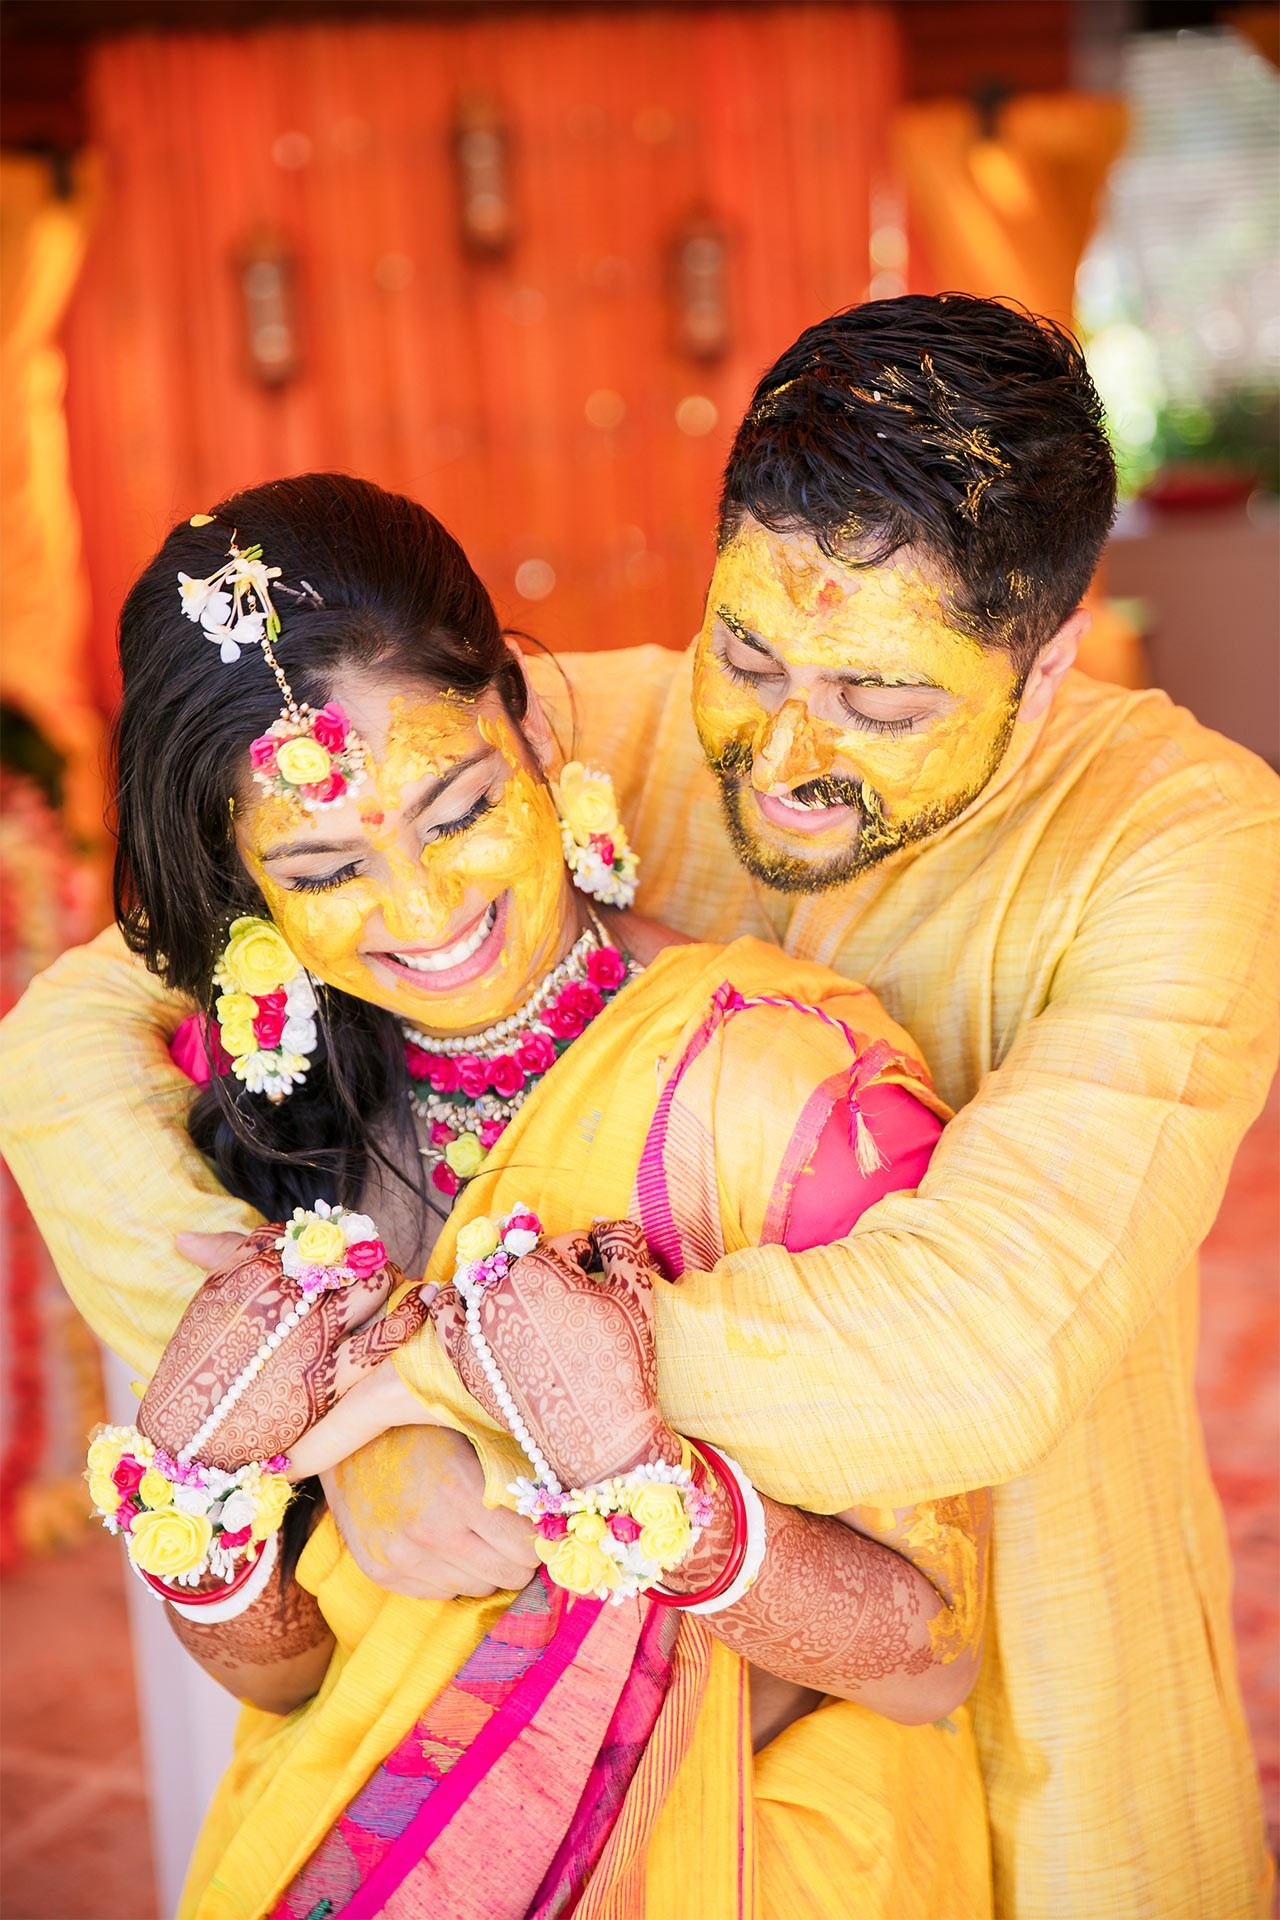 Bride and Groom covered in Haldi surrounded by orange and yellow fabrics